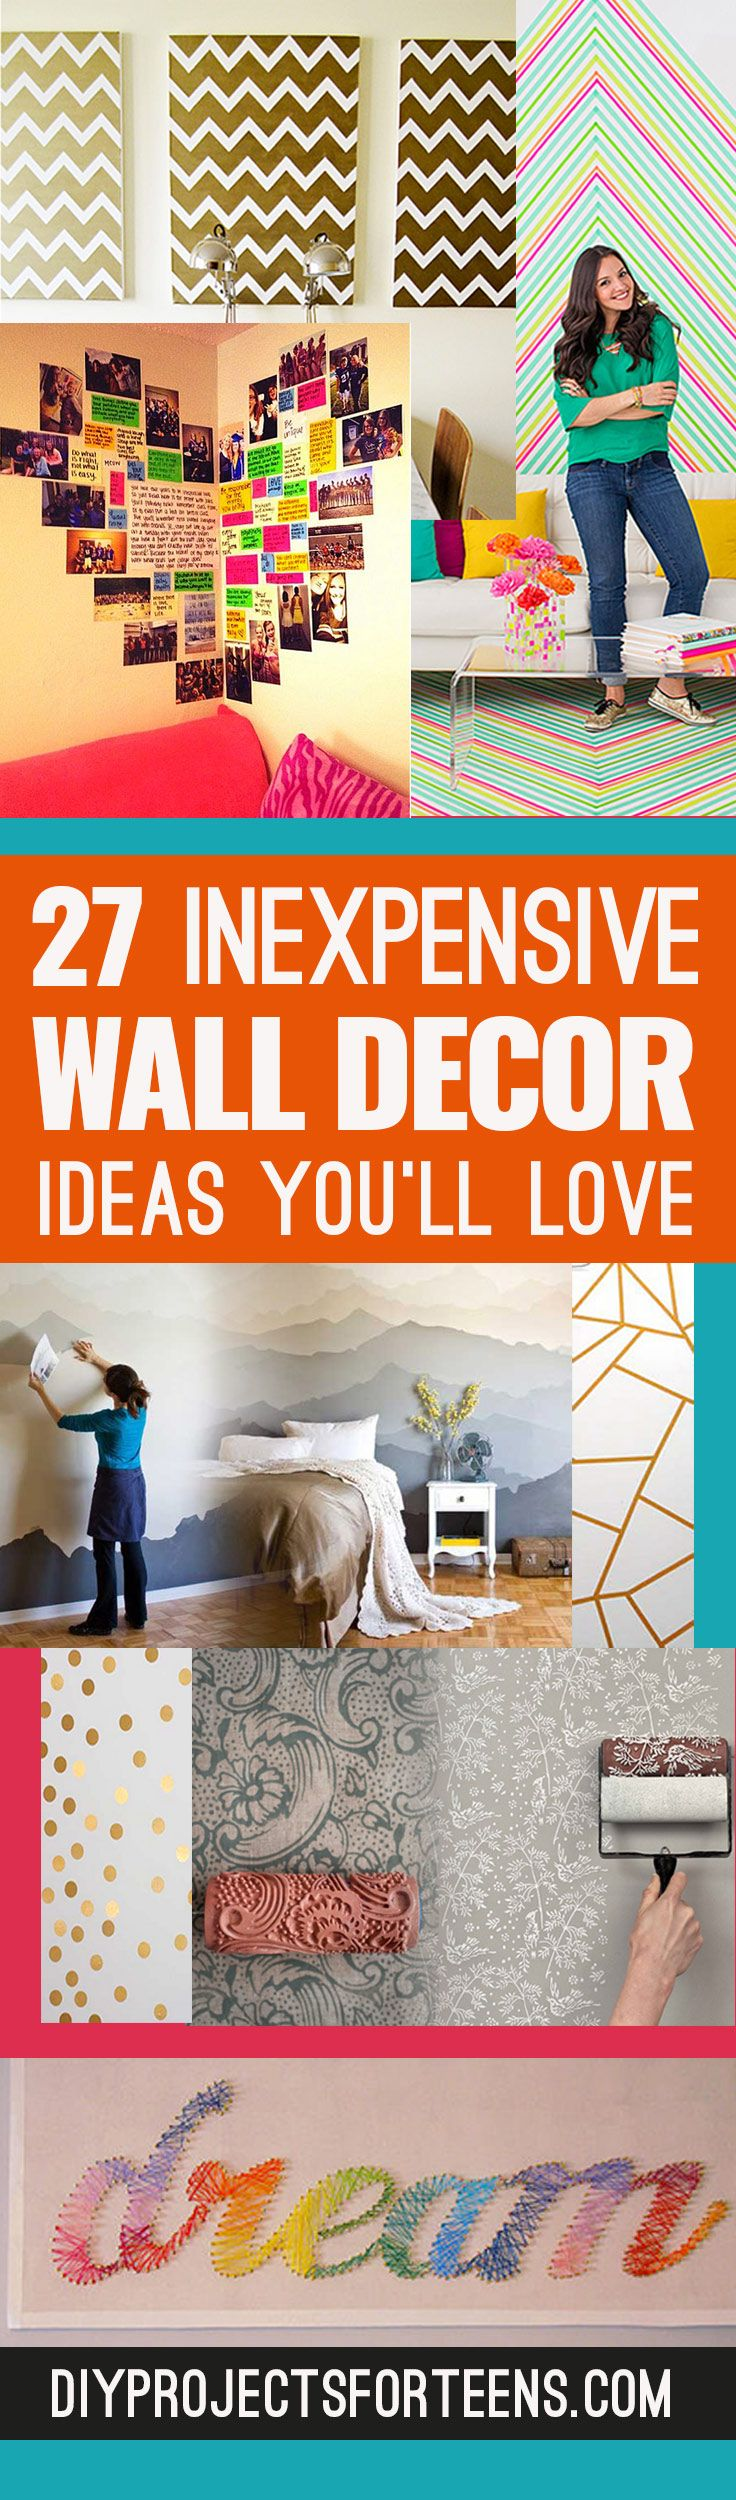 Best 25 Cheap Bedroom Ideas Ideas On Pinterest  Cheap Bedroom Classy Kids Bedroom Ideas On A Budget Decorating Inspiration